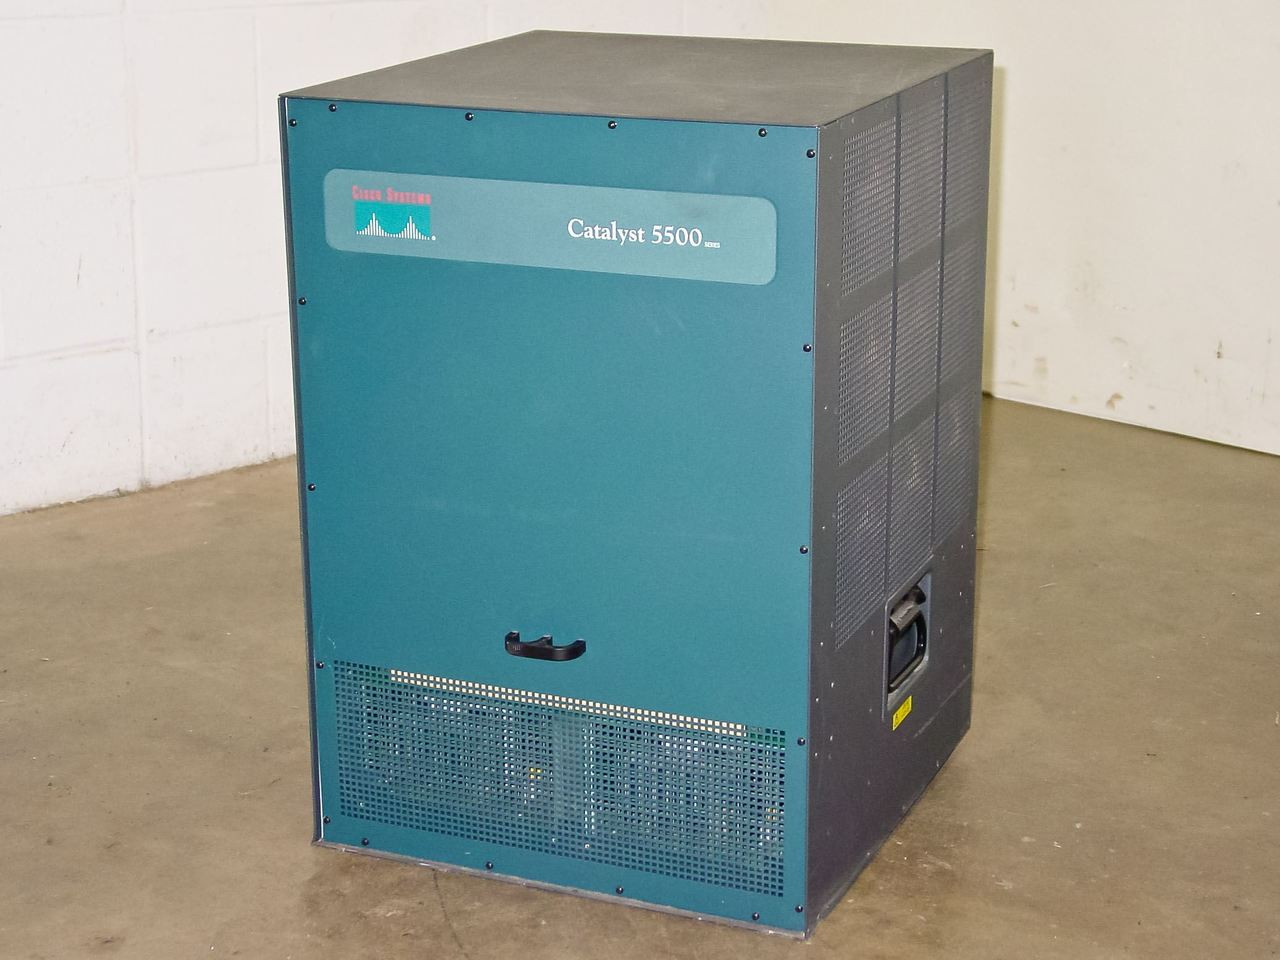 Cisco 5500 Catalyst 13 Slot Chassis Loaded Network Cards